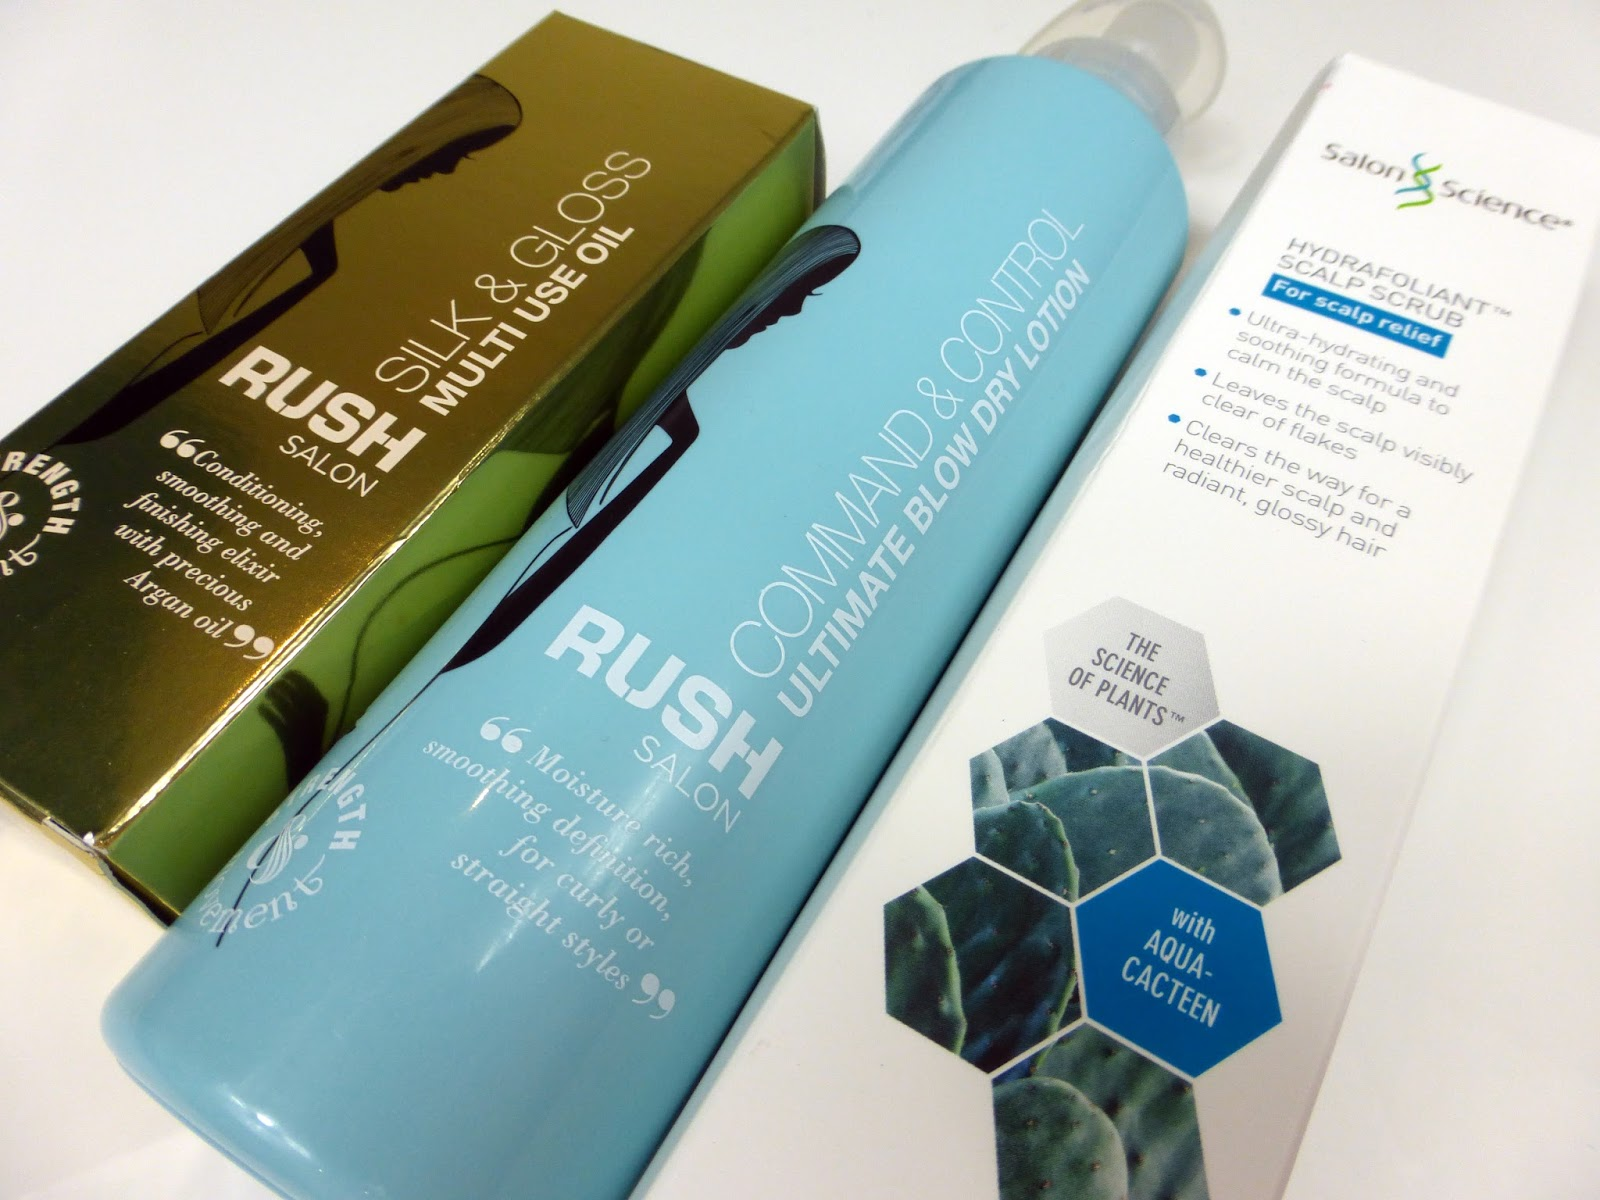 RUSH Multi-Use Oil, RUSH haircare, Salon science